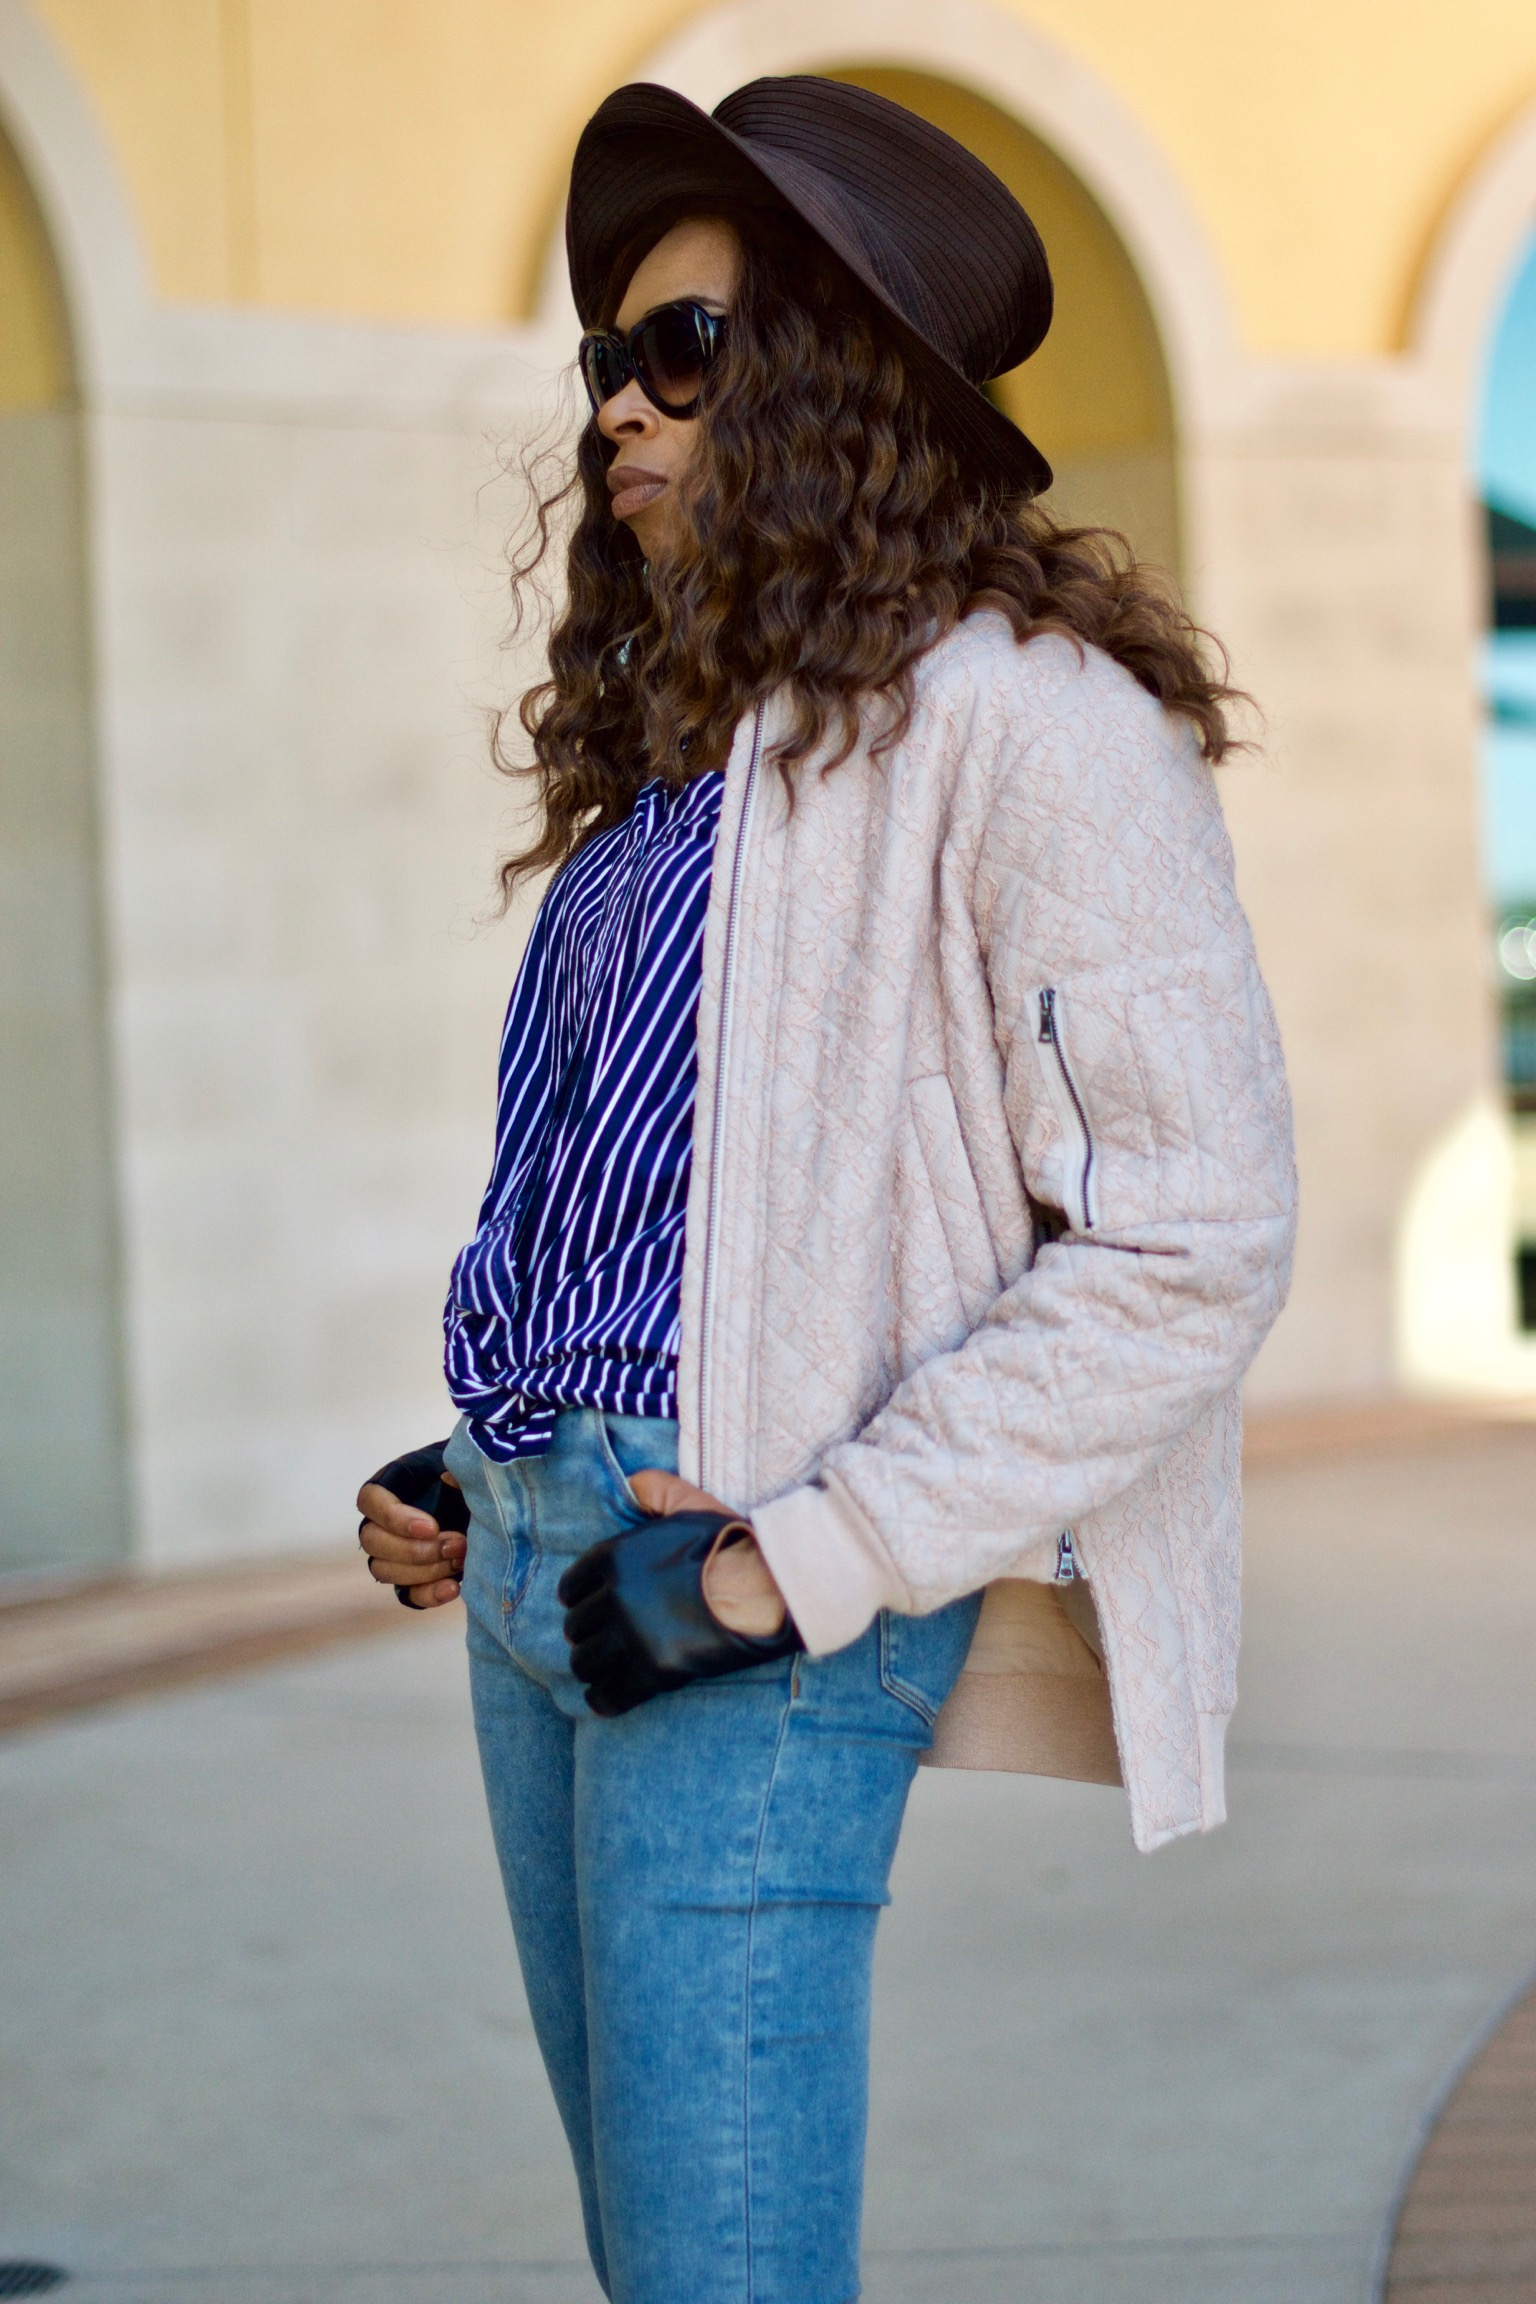 Deconstructed off shoulder shirt + Bomber Jacket